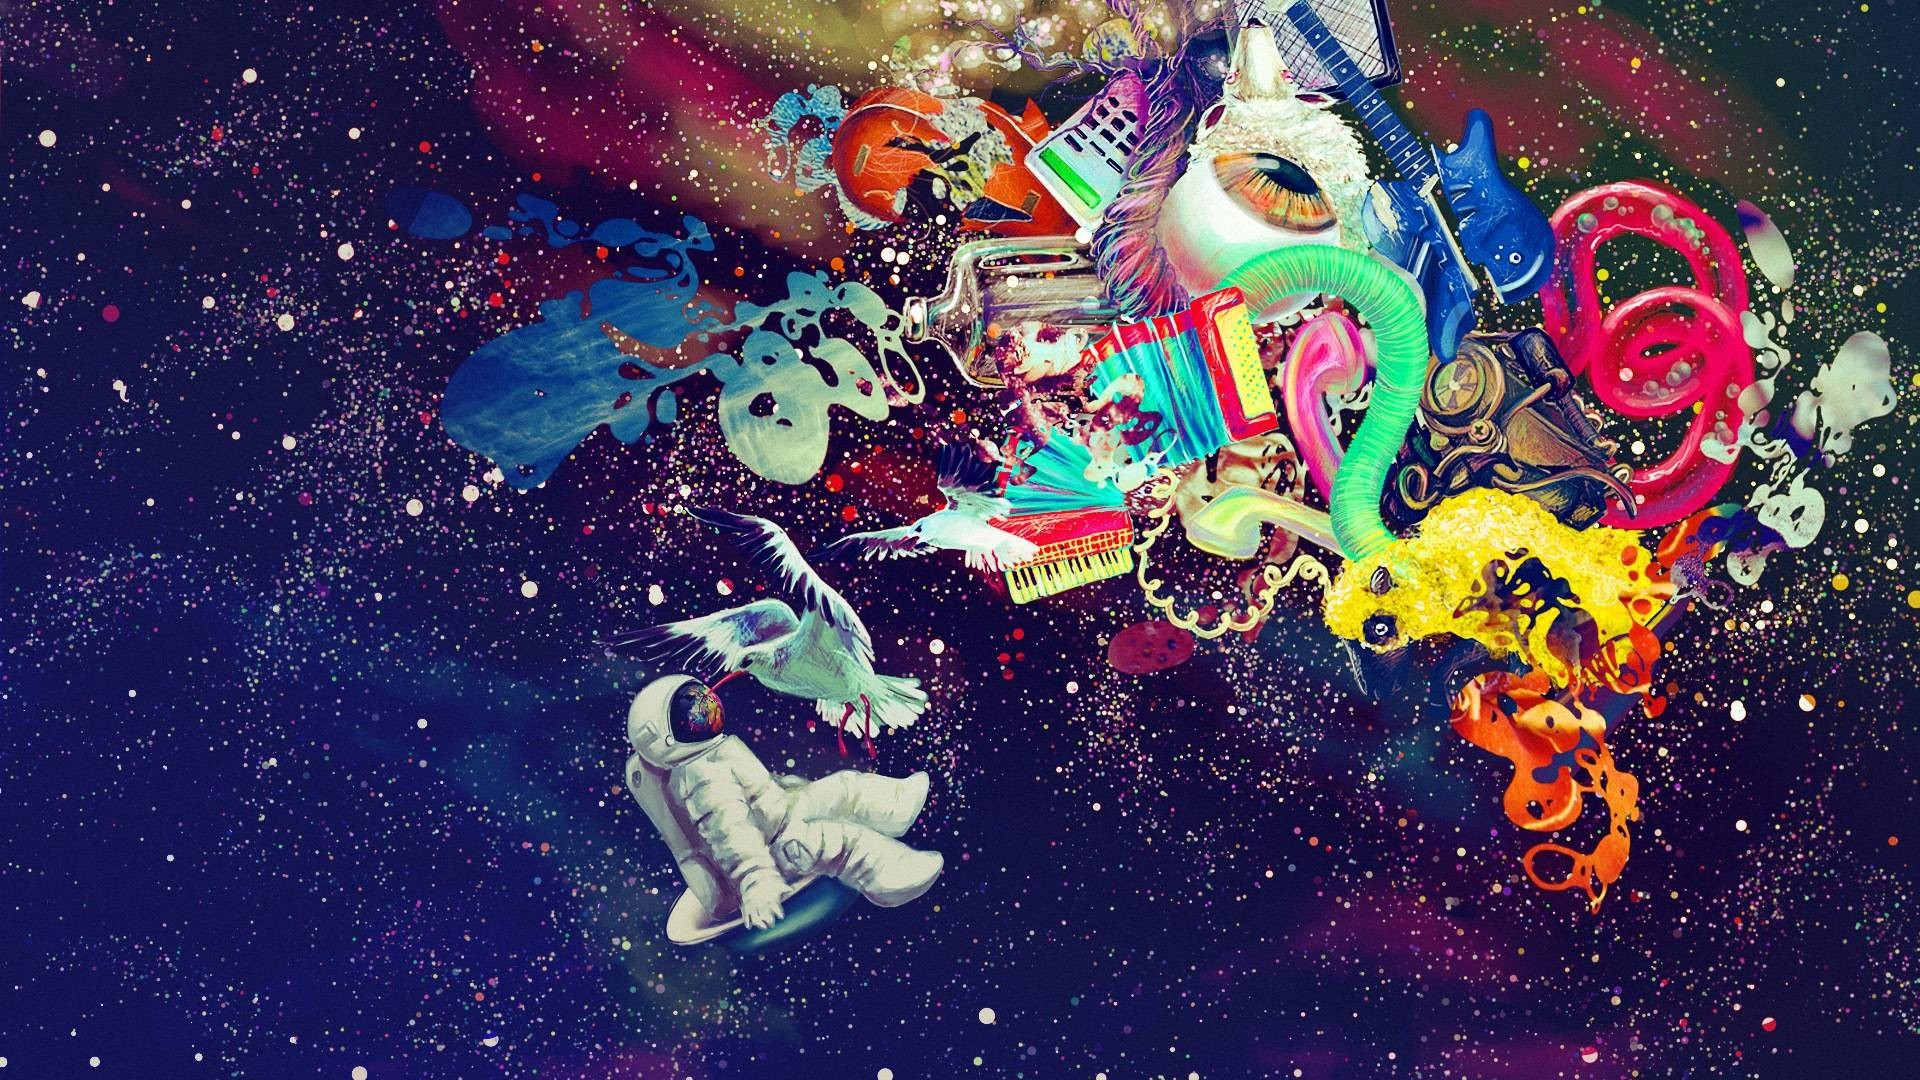 1920x1080 Trippy Backgrounds For Mac 12963 Full HD Wallpaper Desktop - Res .